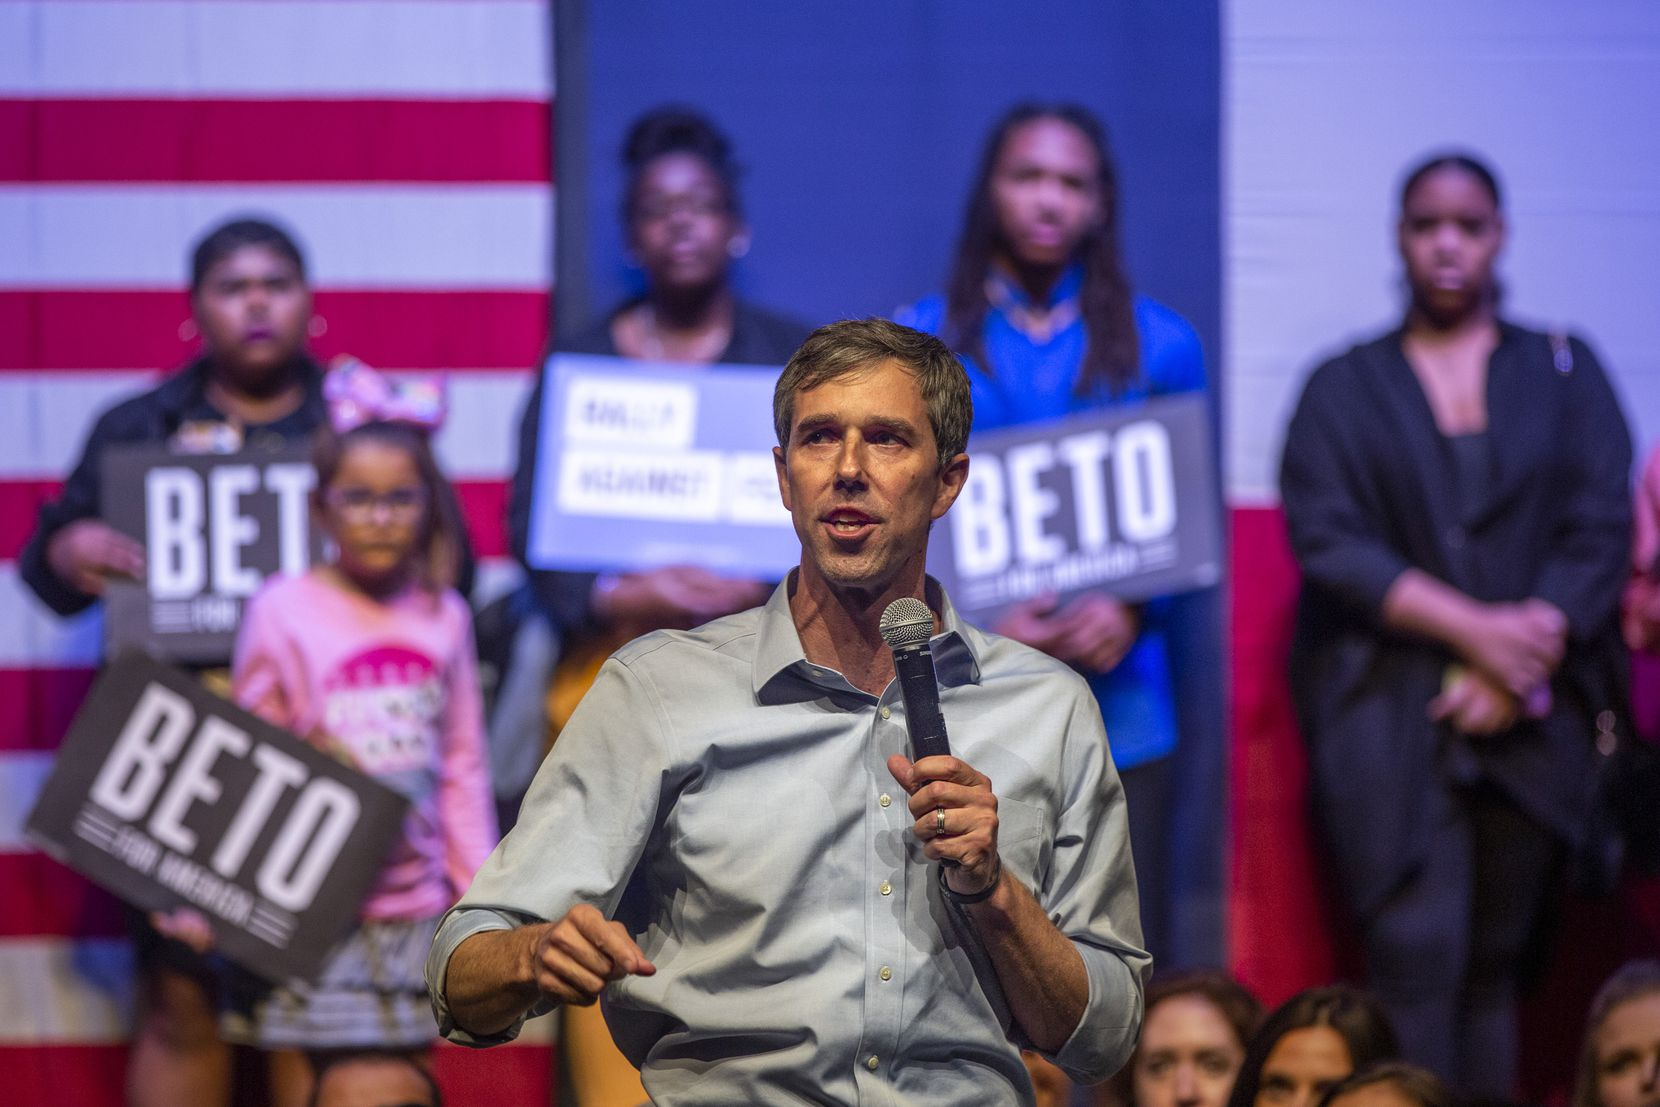 Then Democratic presidential candidate and former Texas Rep. Beto O'Rourke addresses the crowd at the Rally Against Fear event hosted by O'Rourke's campaign in the Theatre at Grand Prairie on Thursday, Oct. 17, 2019, in Grand Prairie, Texas. O'Rourke hosted the event in response to President Donald Trump's rally in downtown Dallas at the same time.